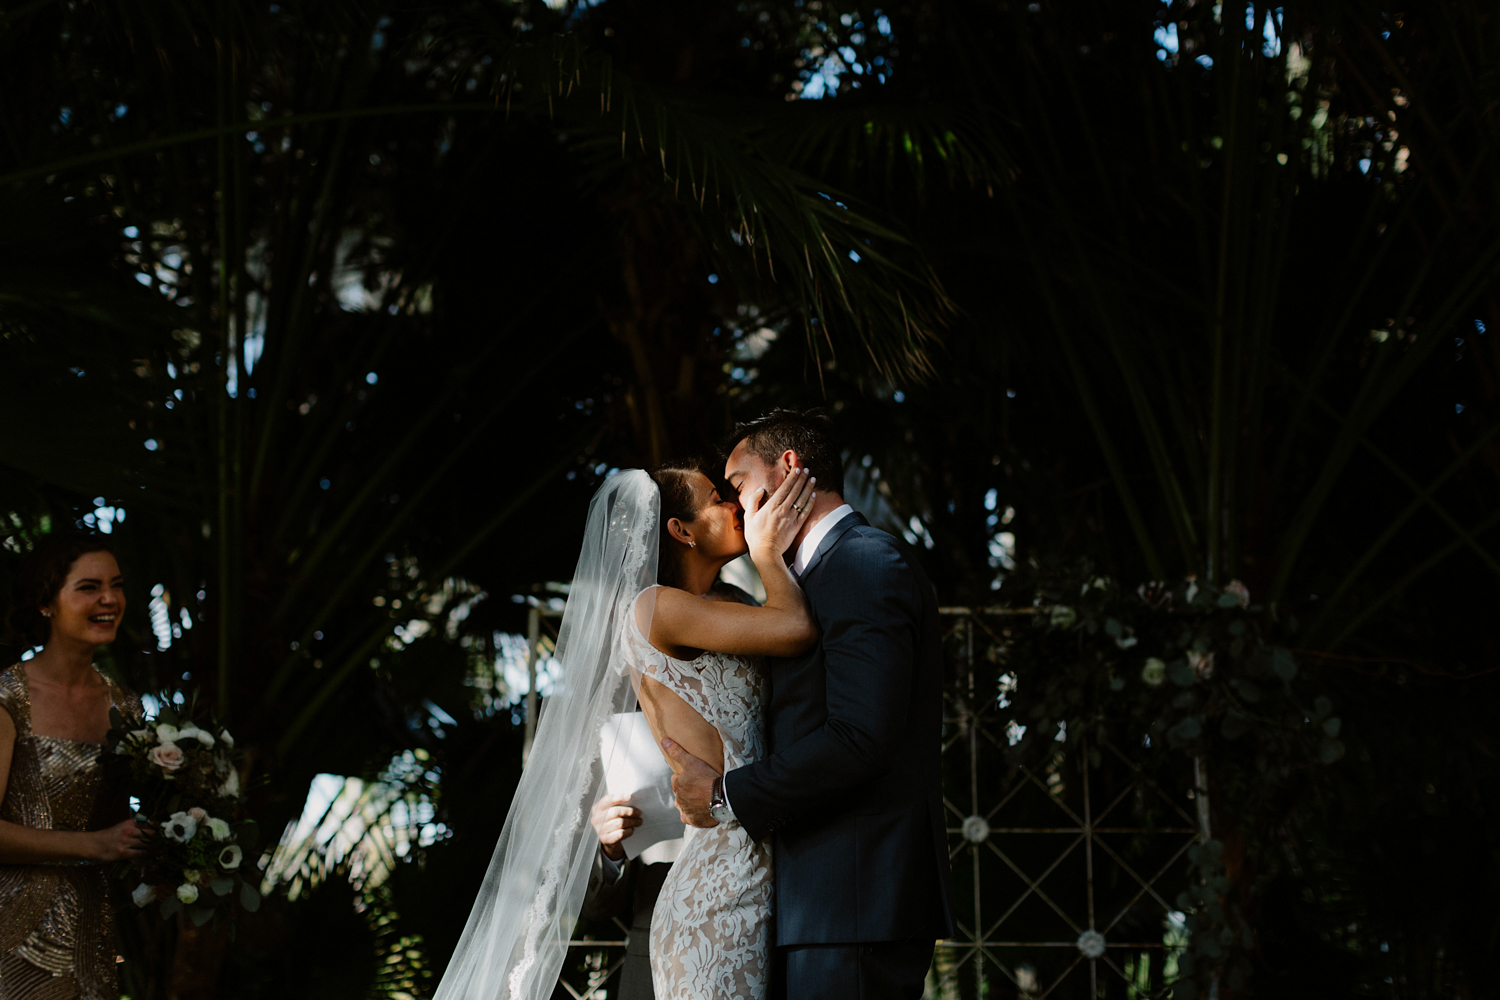 sarasota-wedding-photographer-132.jpg